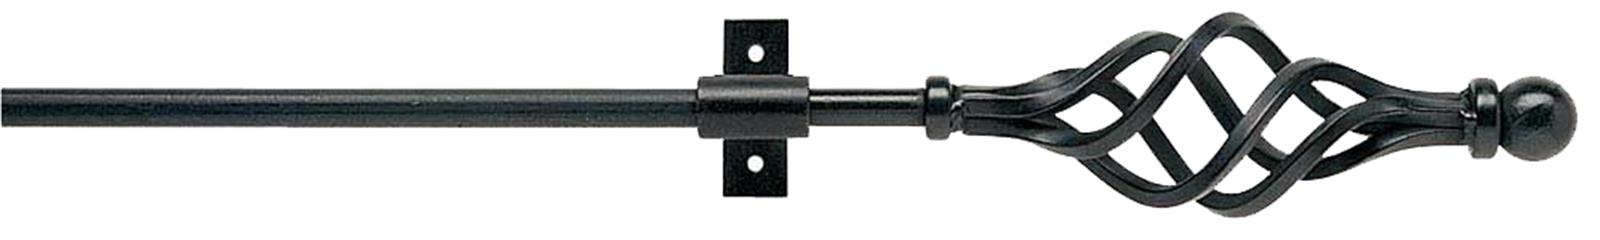 Artisan Black Wrought Iron 12mm Curtain Pole in Black with Cage finials